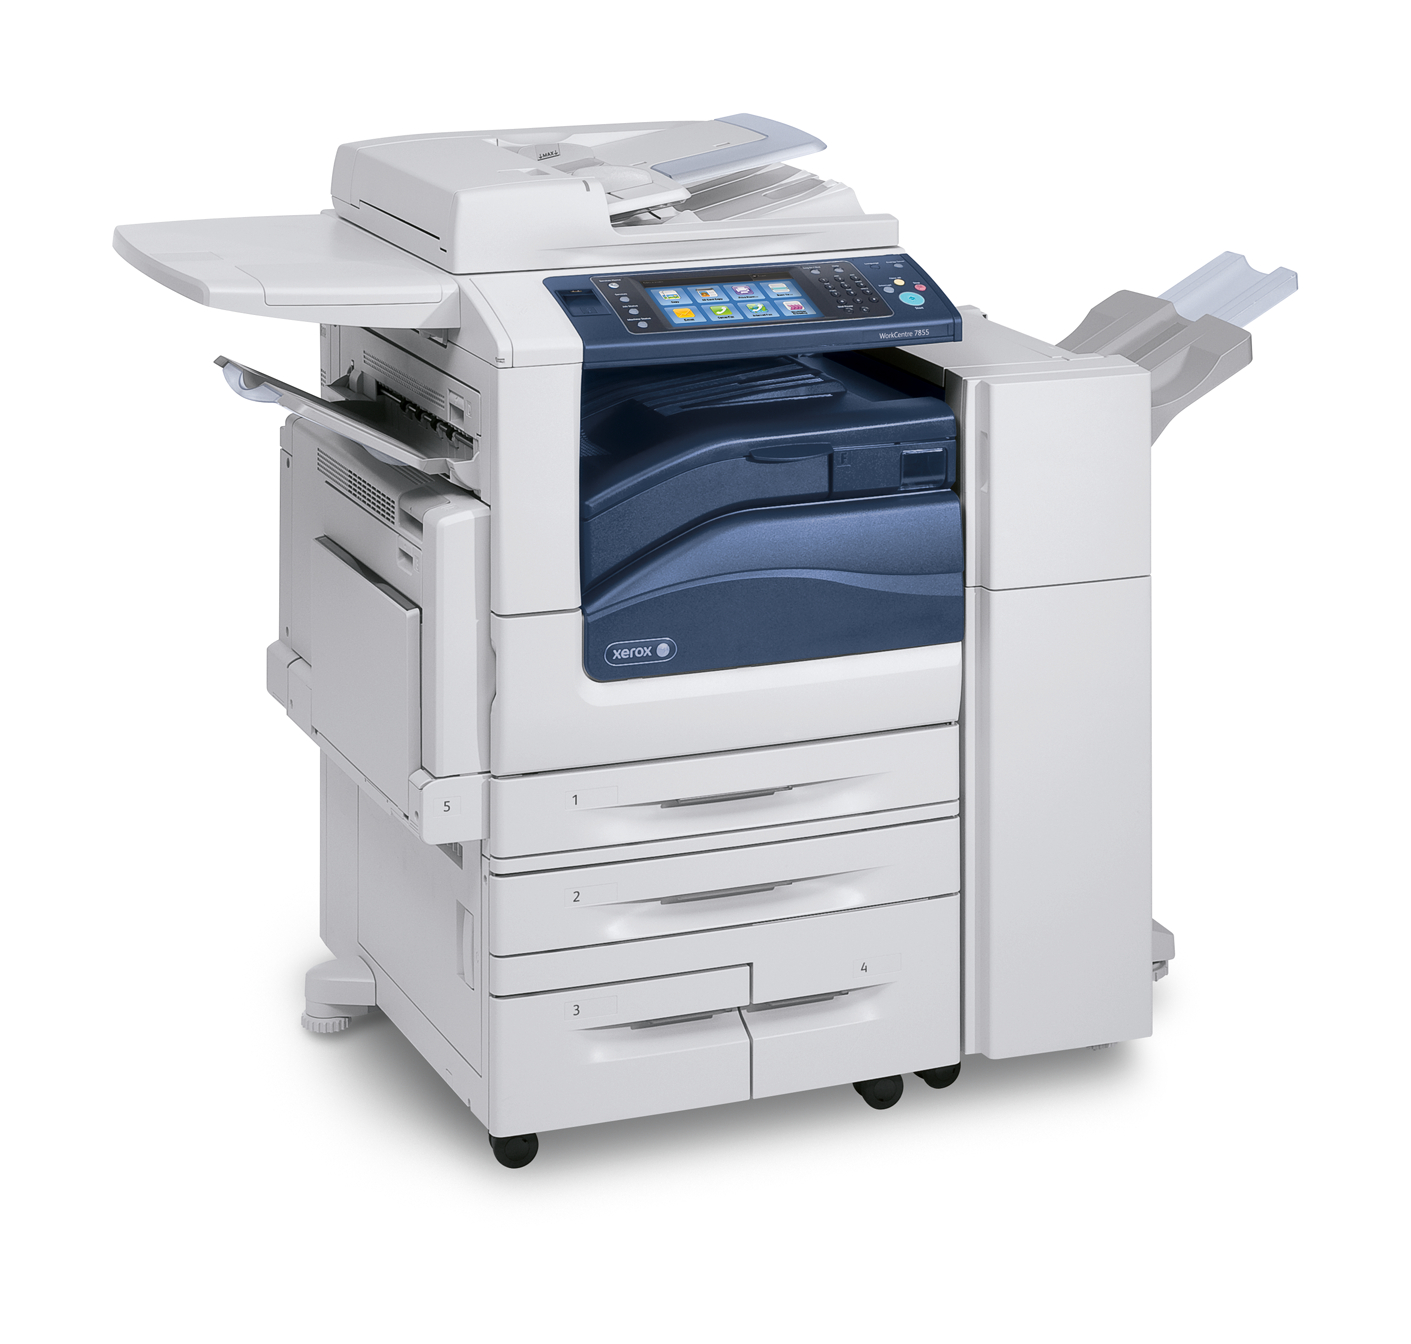 7845 xerox Lease Printer Copier Scanner Fax 56303, 56374, 56377, 56379